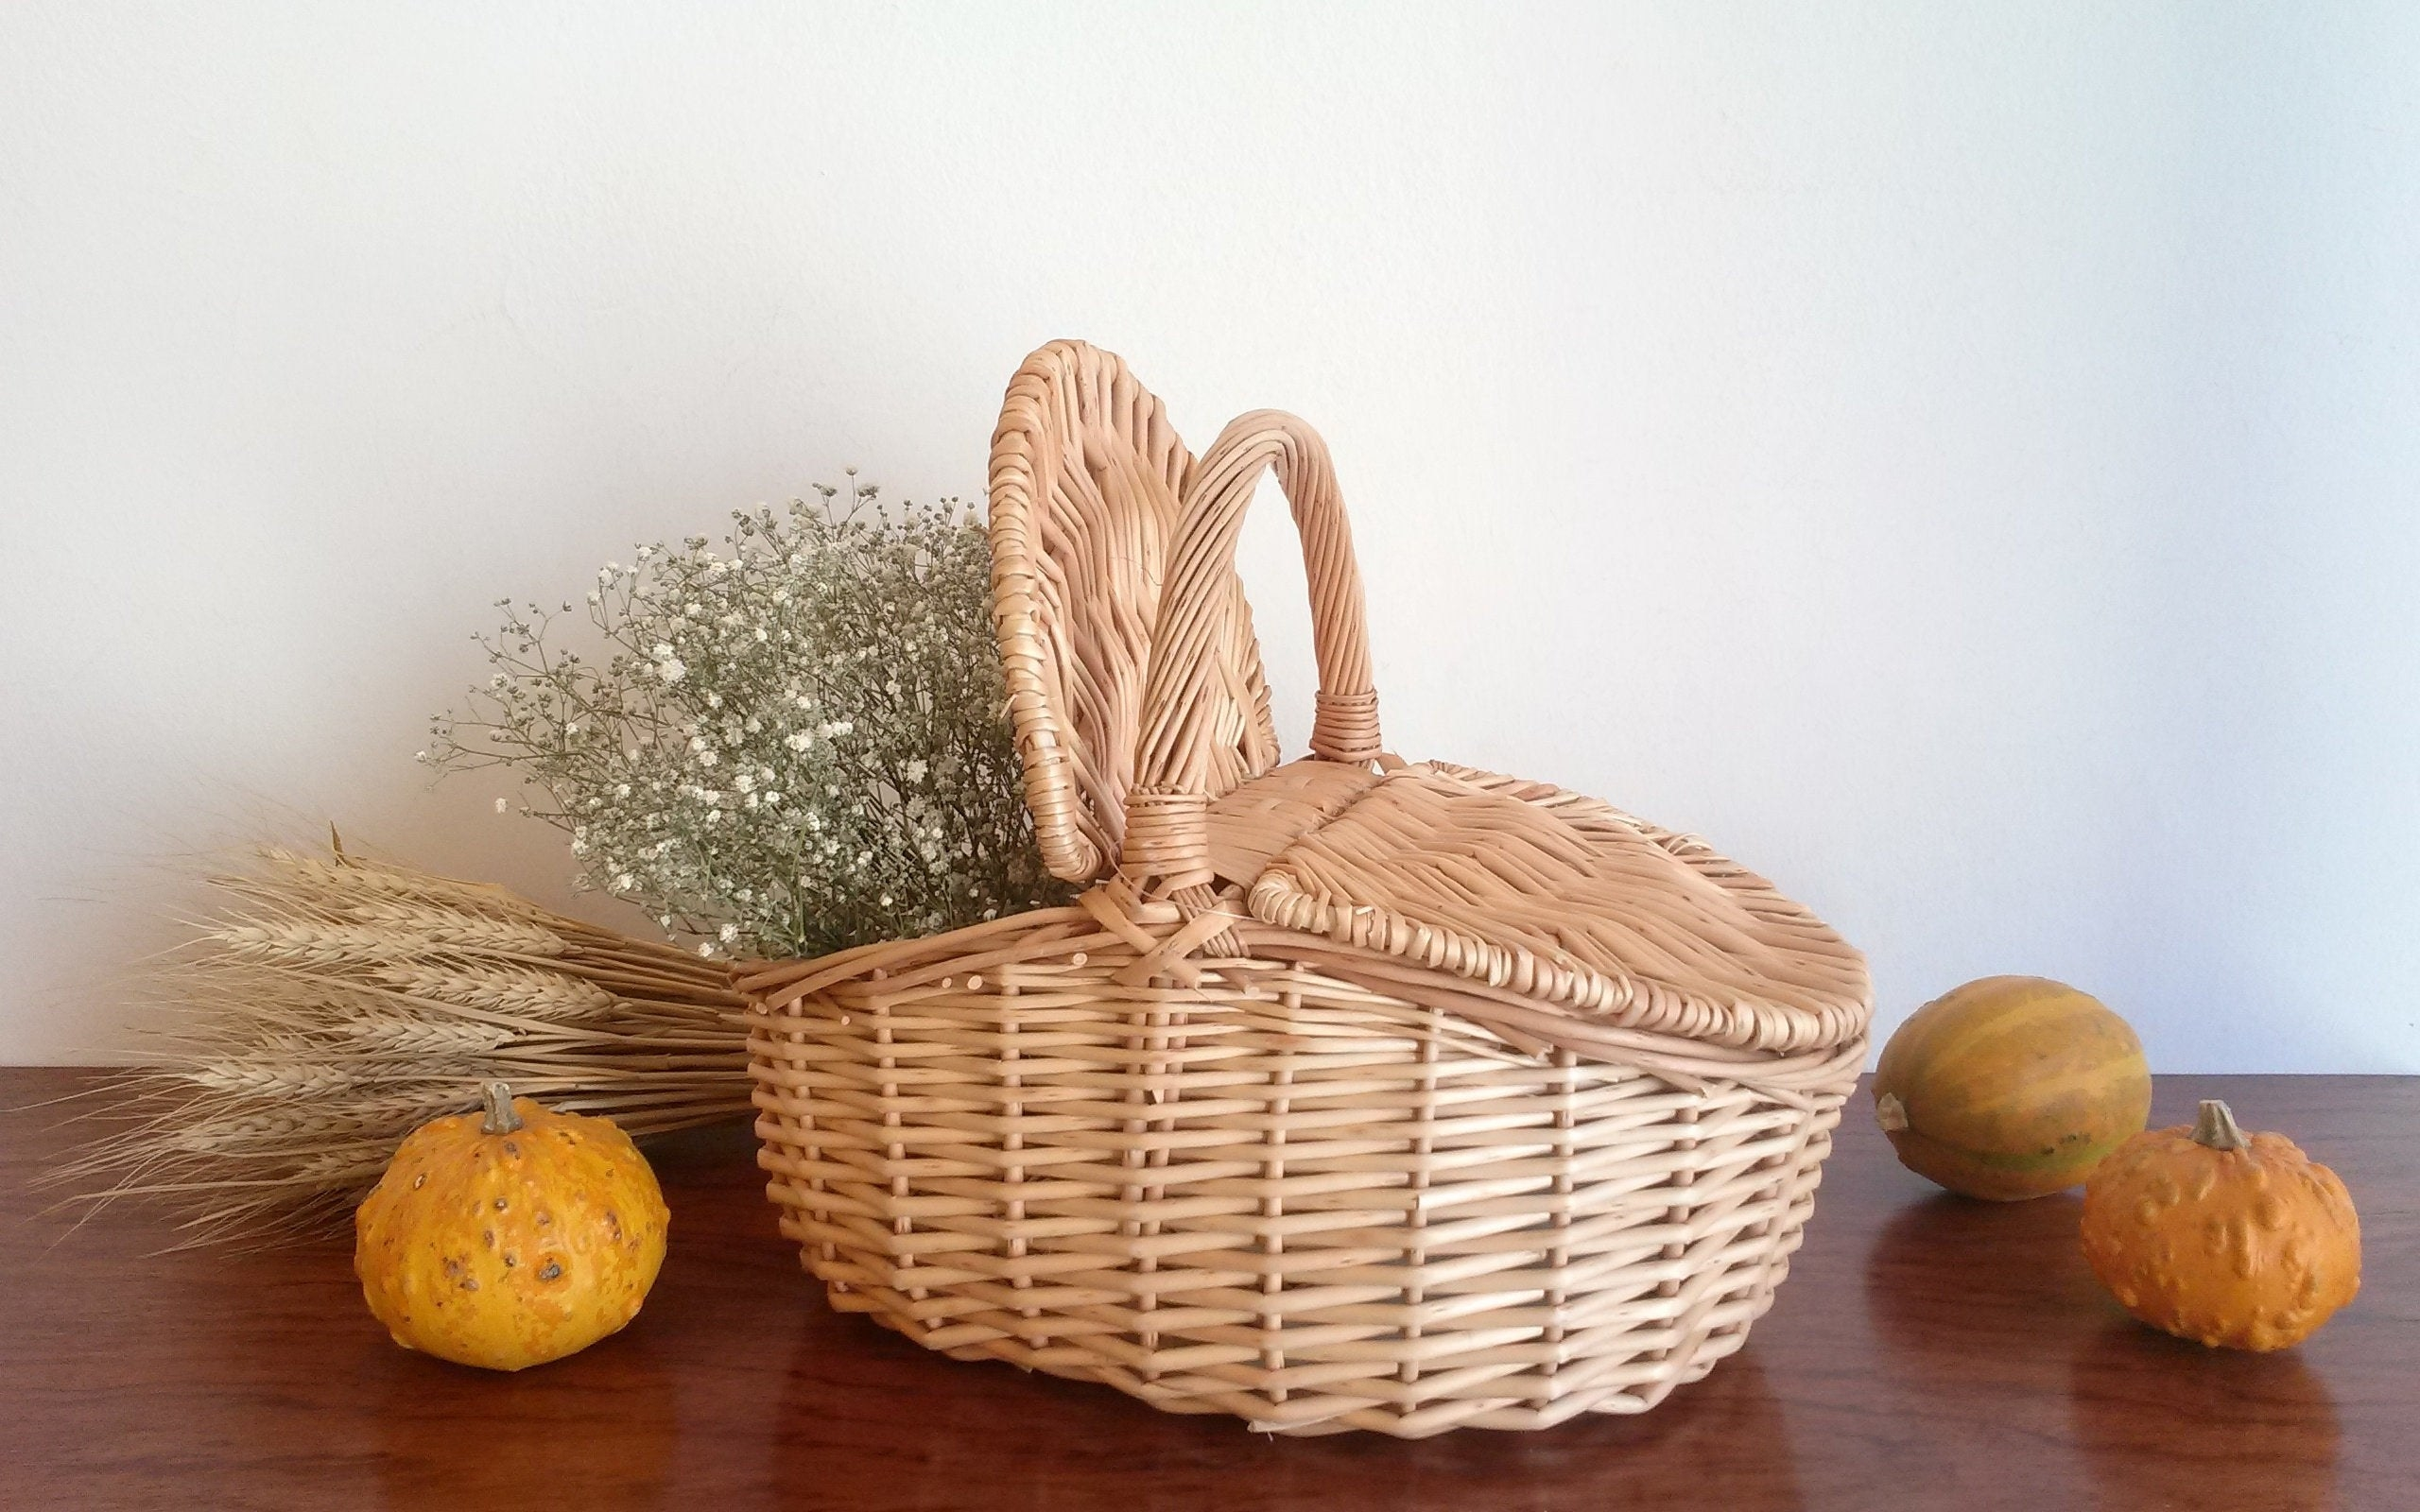 wicker picnic basket with flowers and gourds